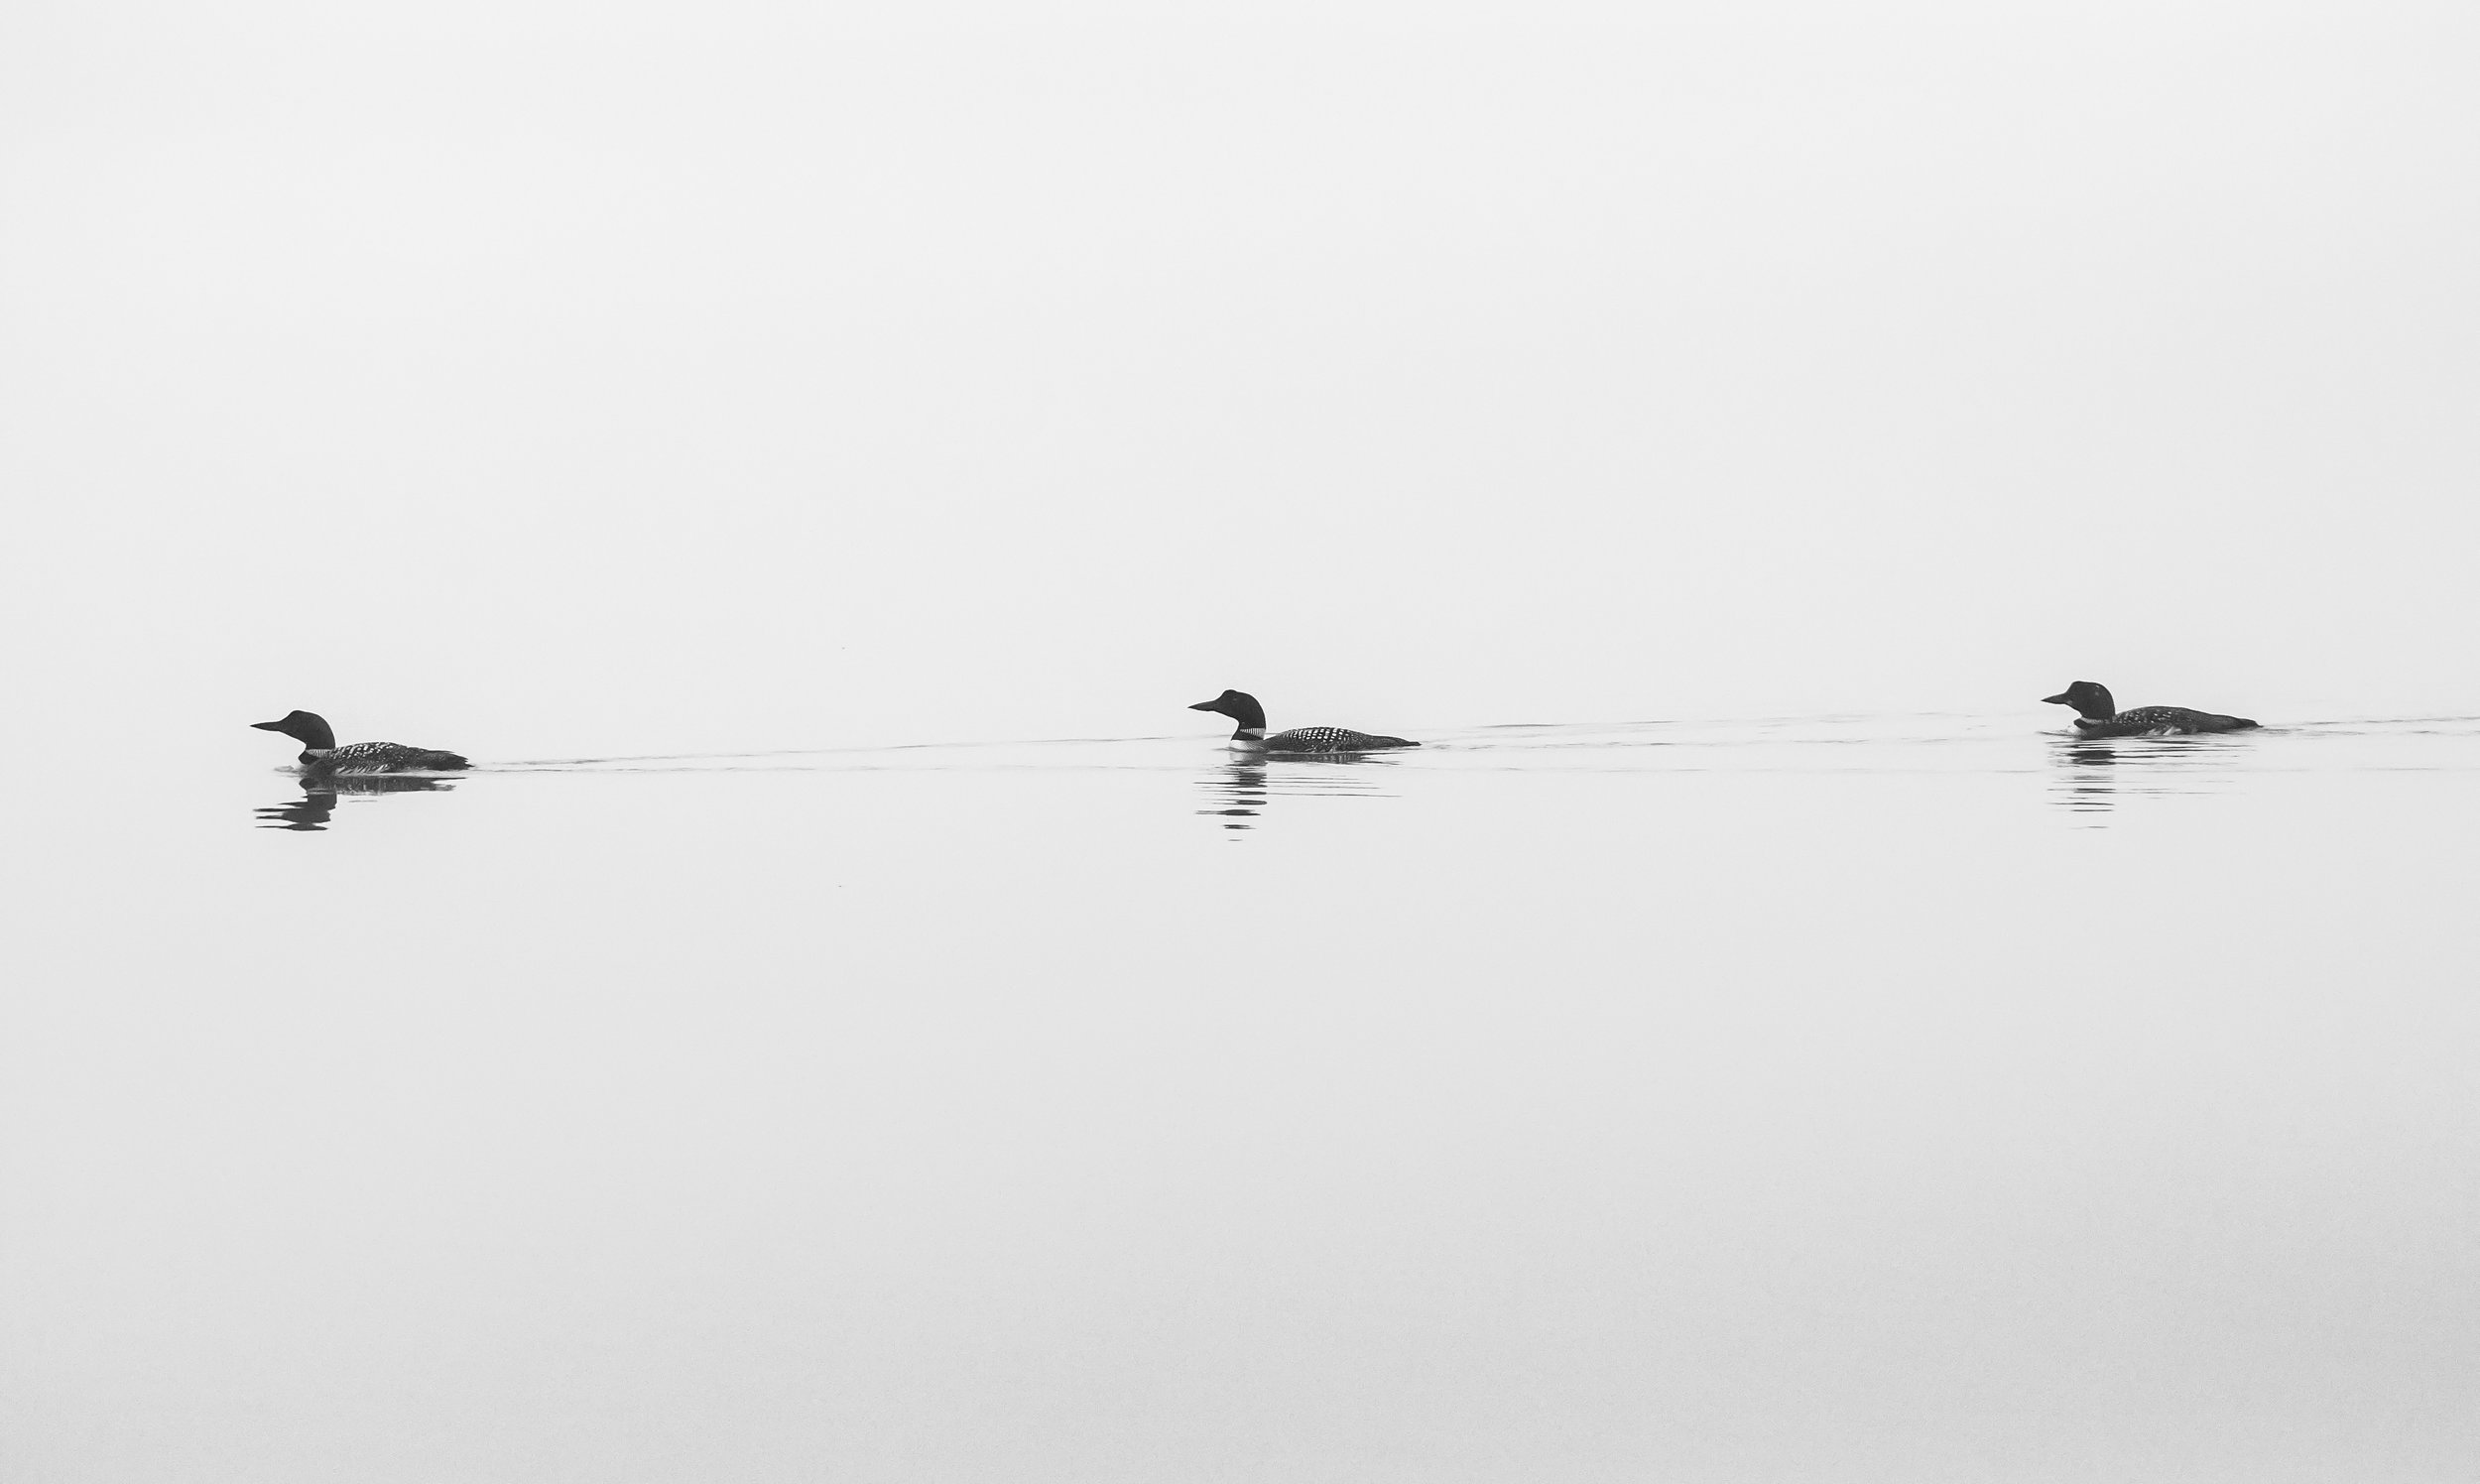 Three   Loons on a foggy Brettun's Pond in Livermore, Maine